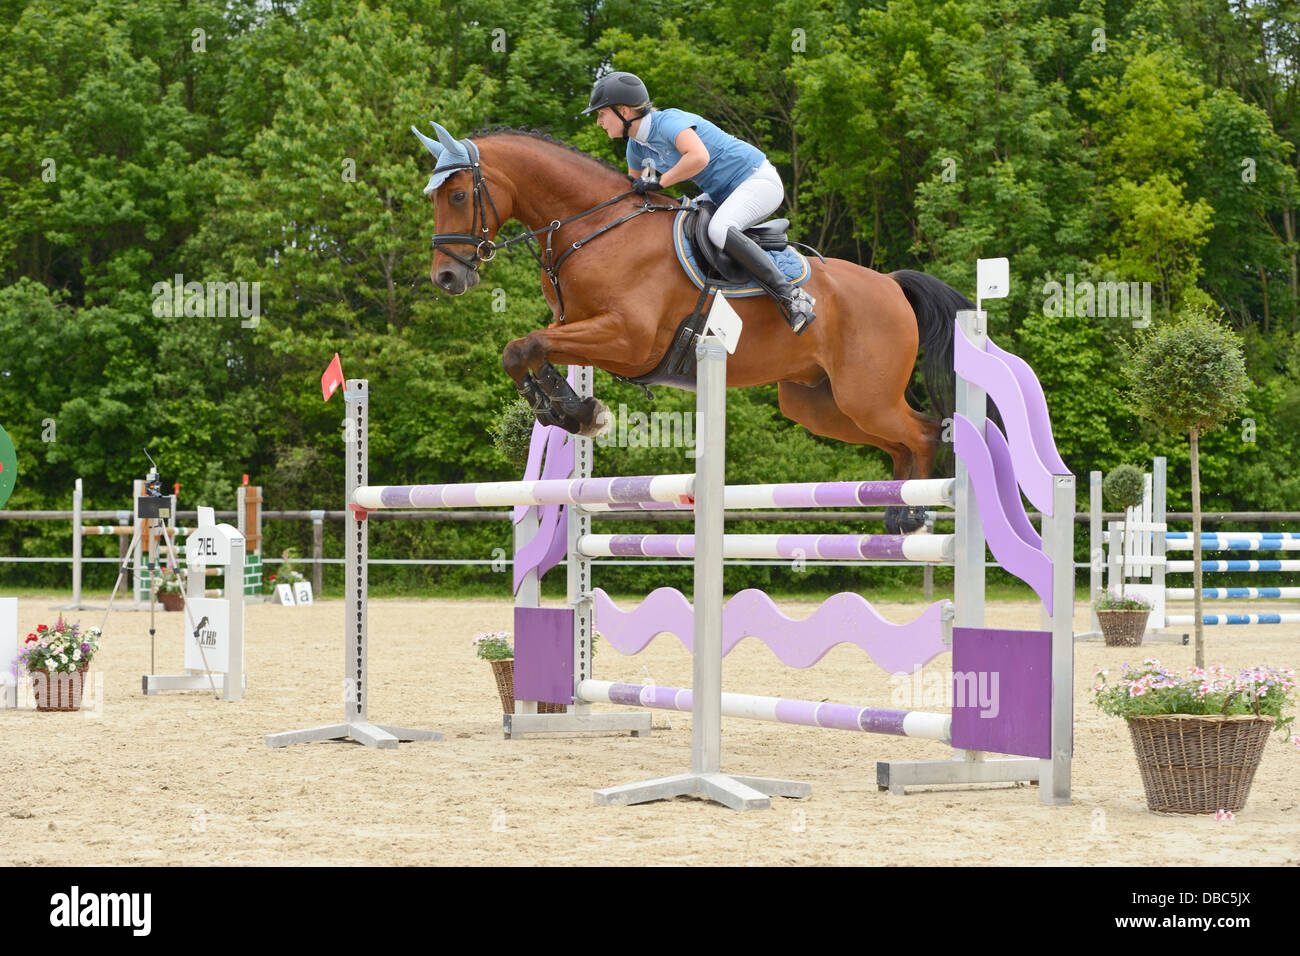 Oxer Jump High Resolution Stock Photography And Images Alamy